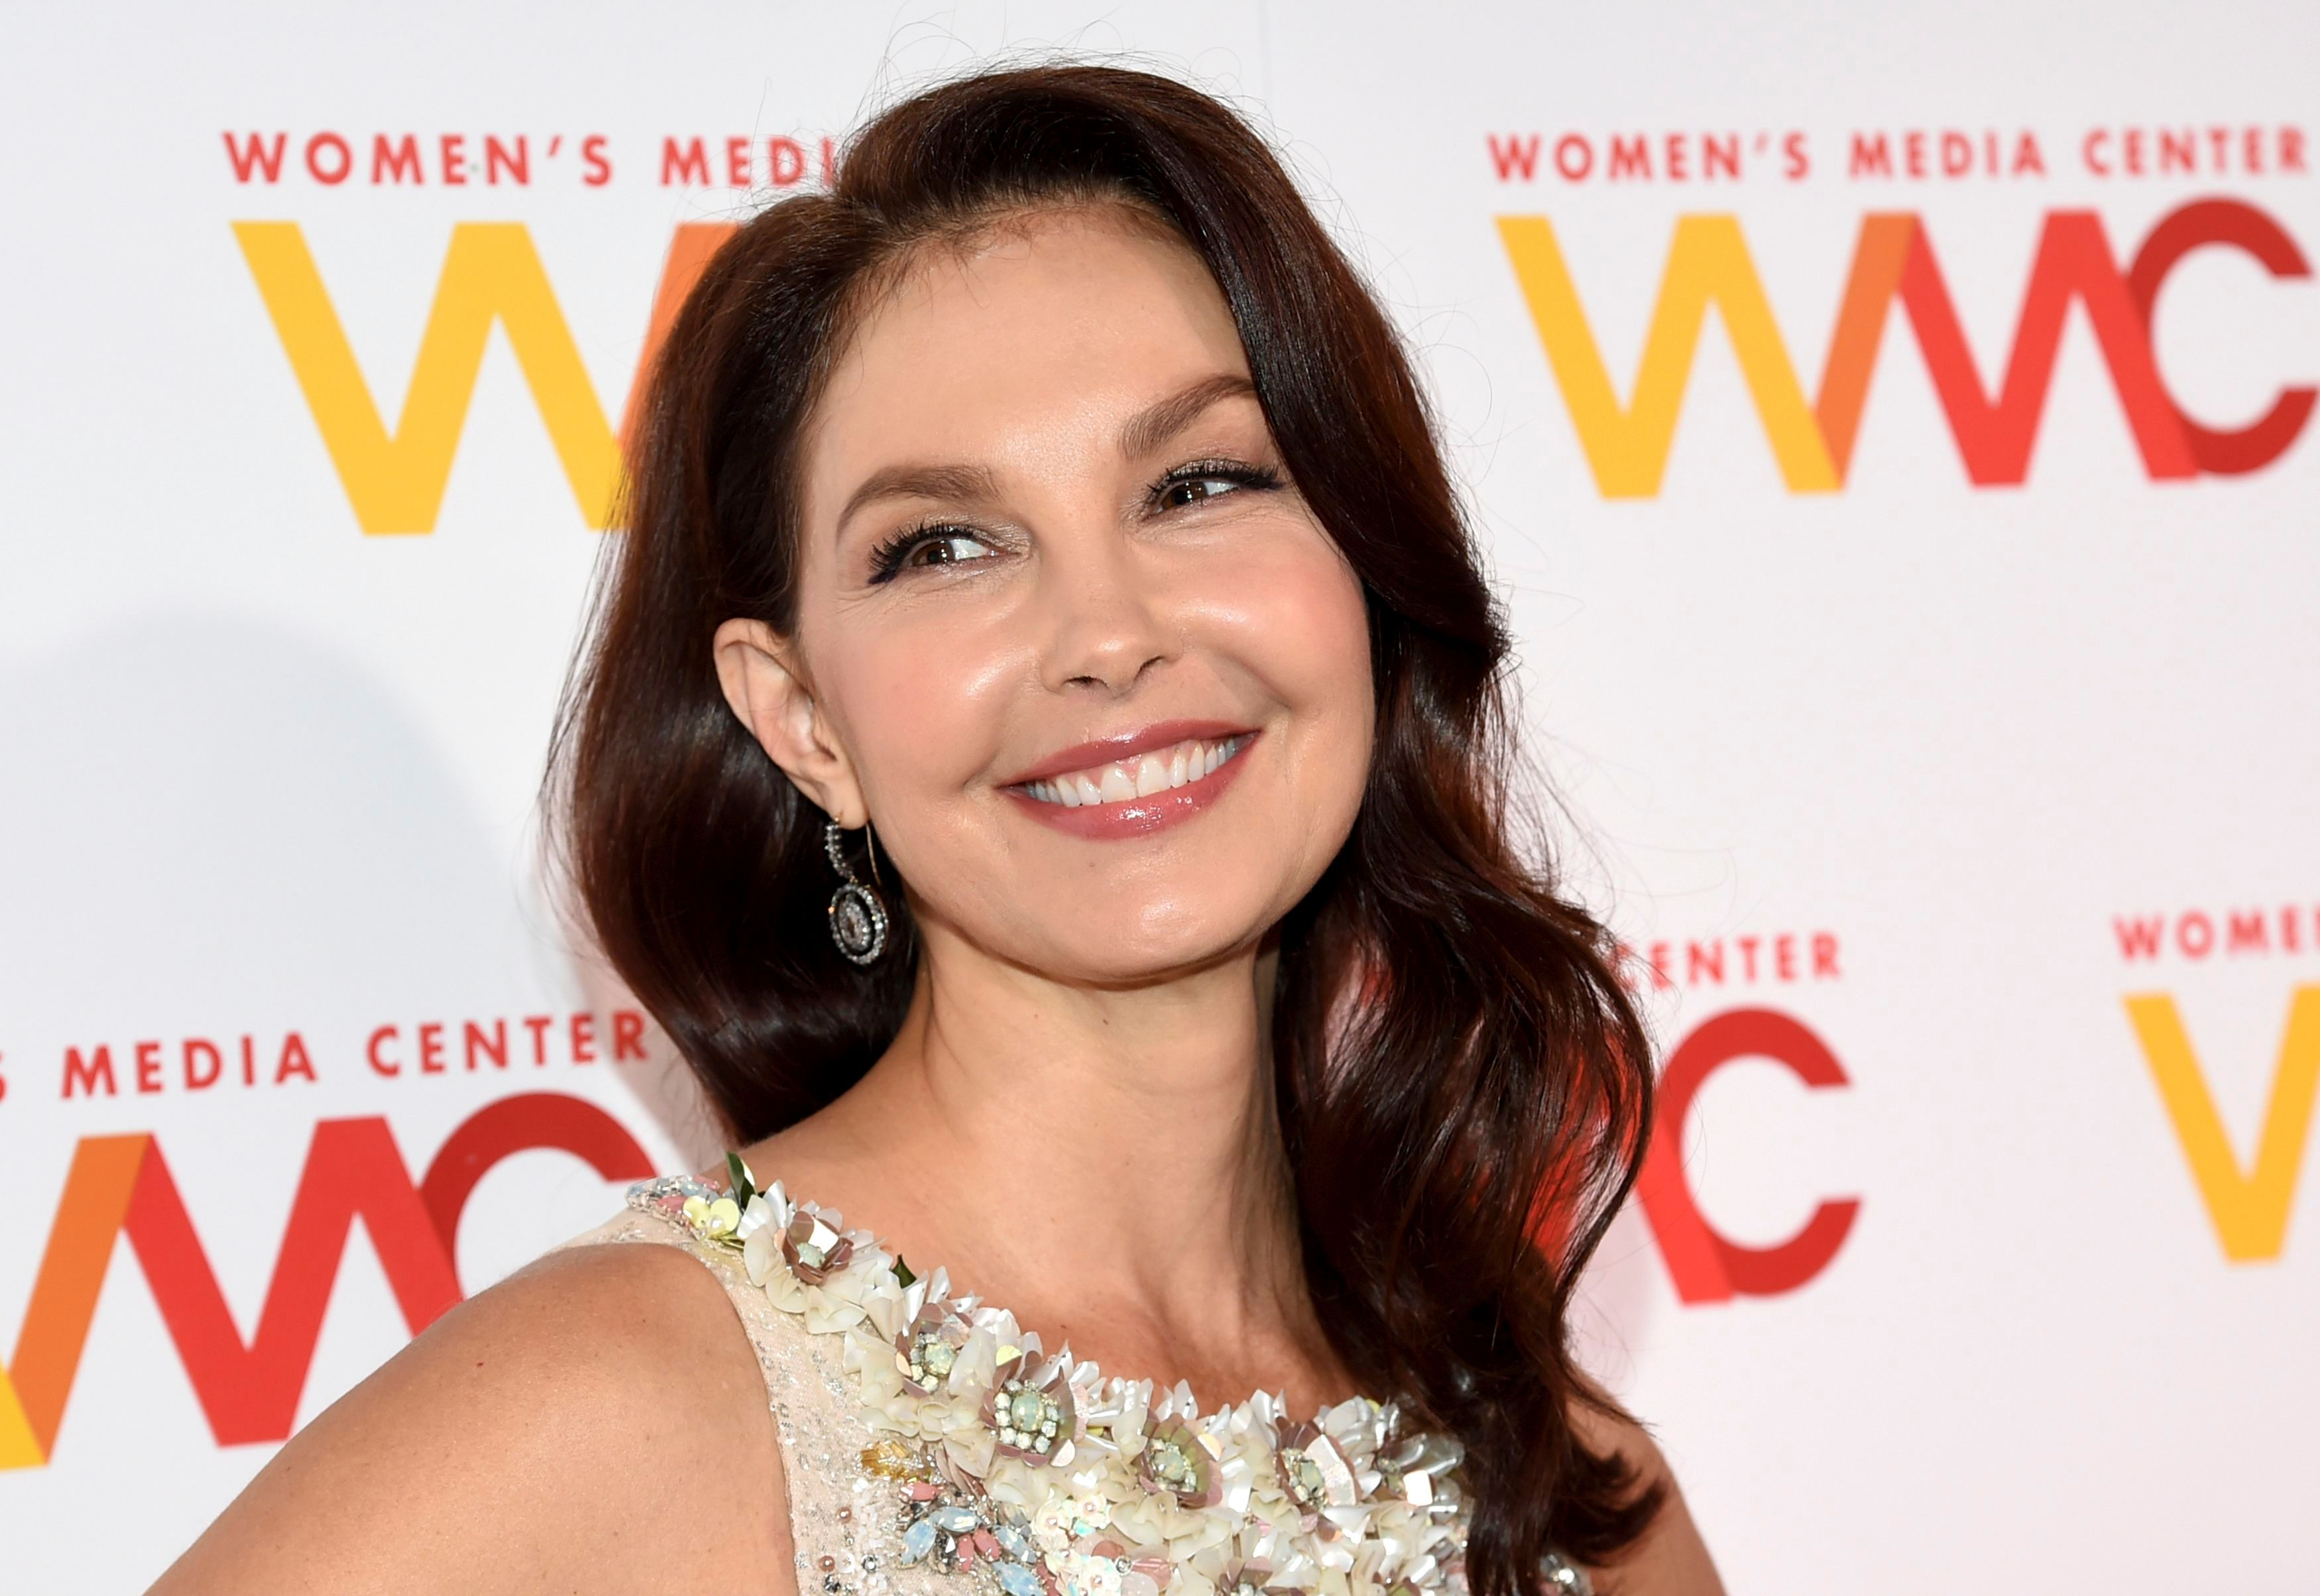 Actress Ashley Judd attends The Women's Media Center 2017 Women's Media Awards at Capitale, in New York2017 Women's Media Awards, New York, USA - 26 Oct 2017